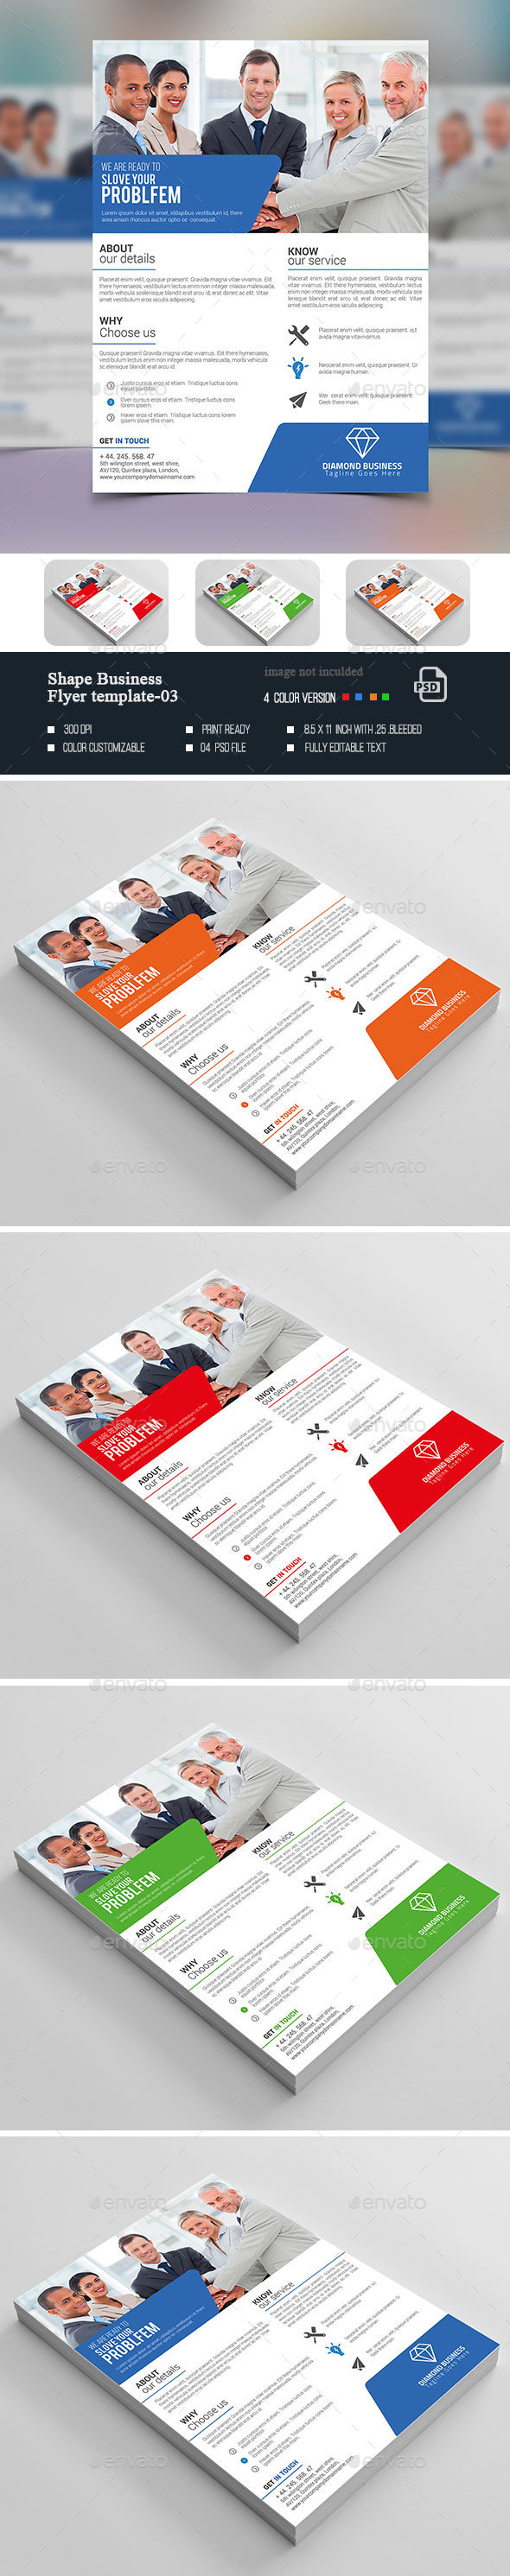 Shape Business Flyer-03 - Corporate Flyers